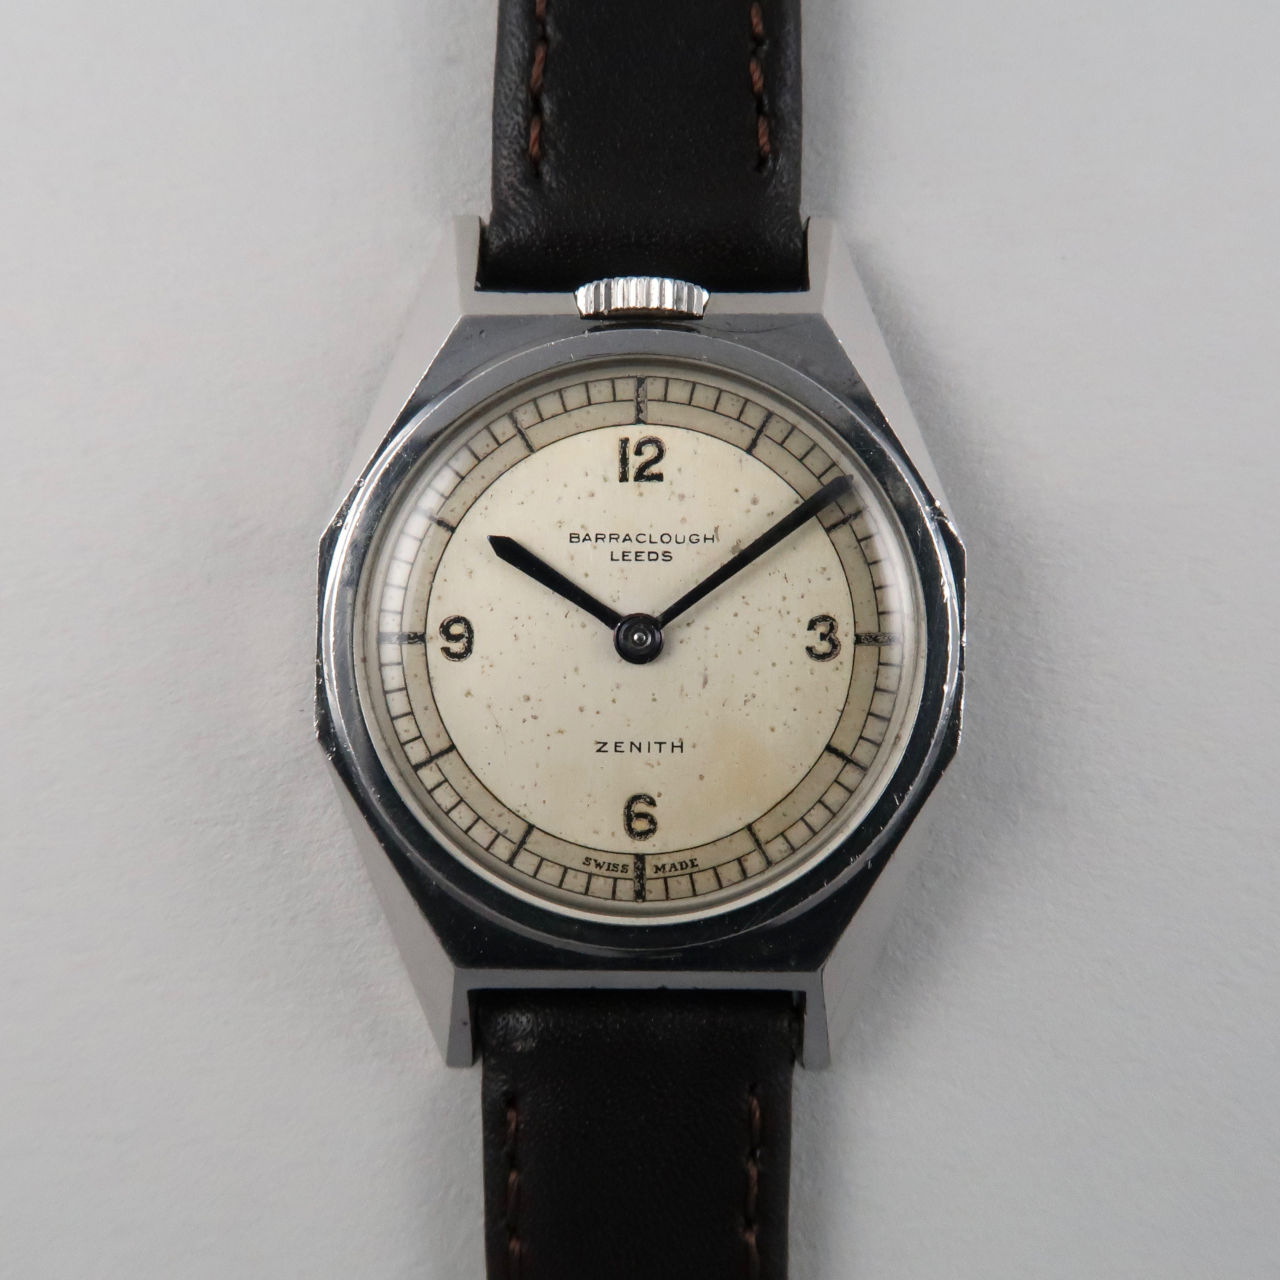 Zenith retailed by Barraclough, Leeds, steel vintage wristwatch, circa 1935